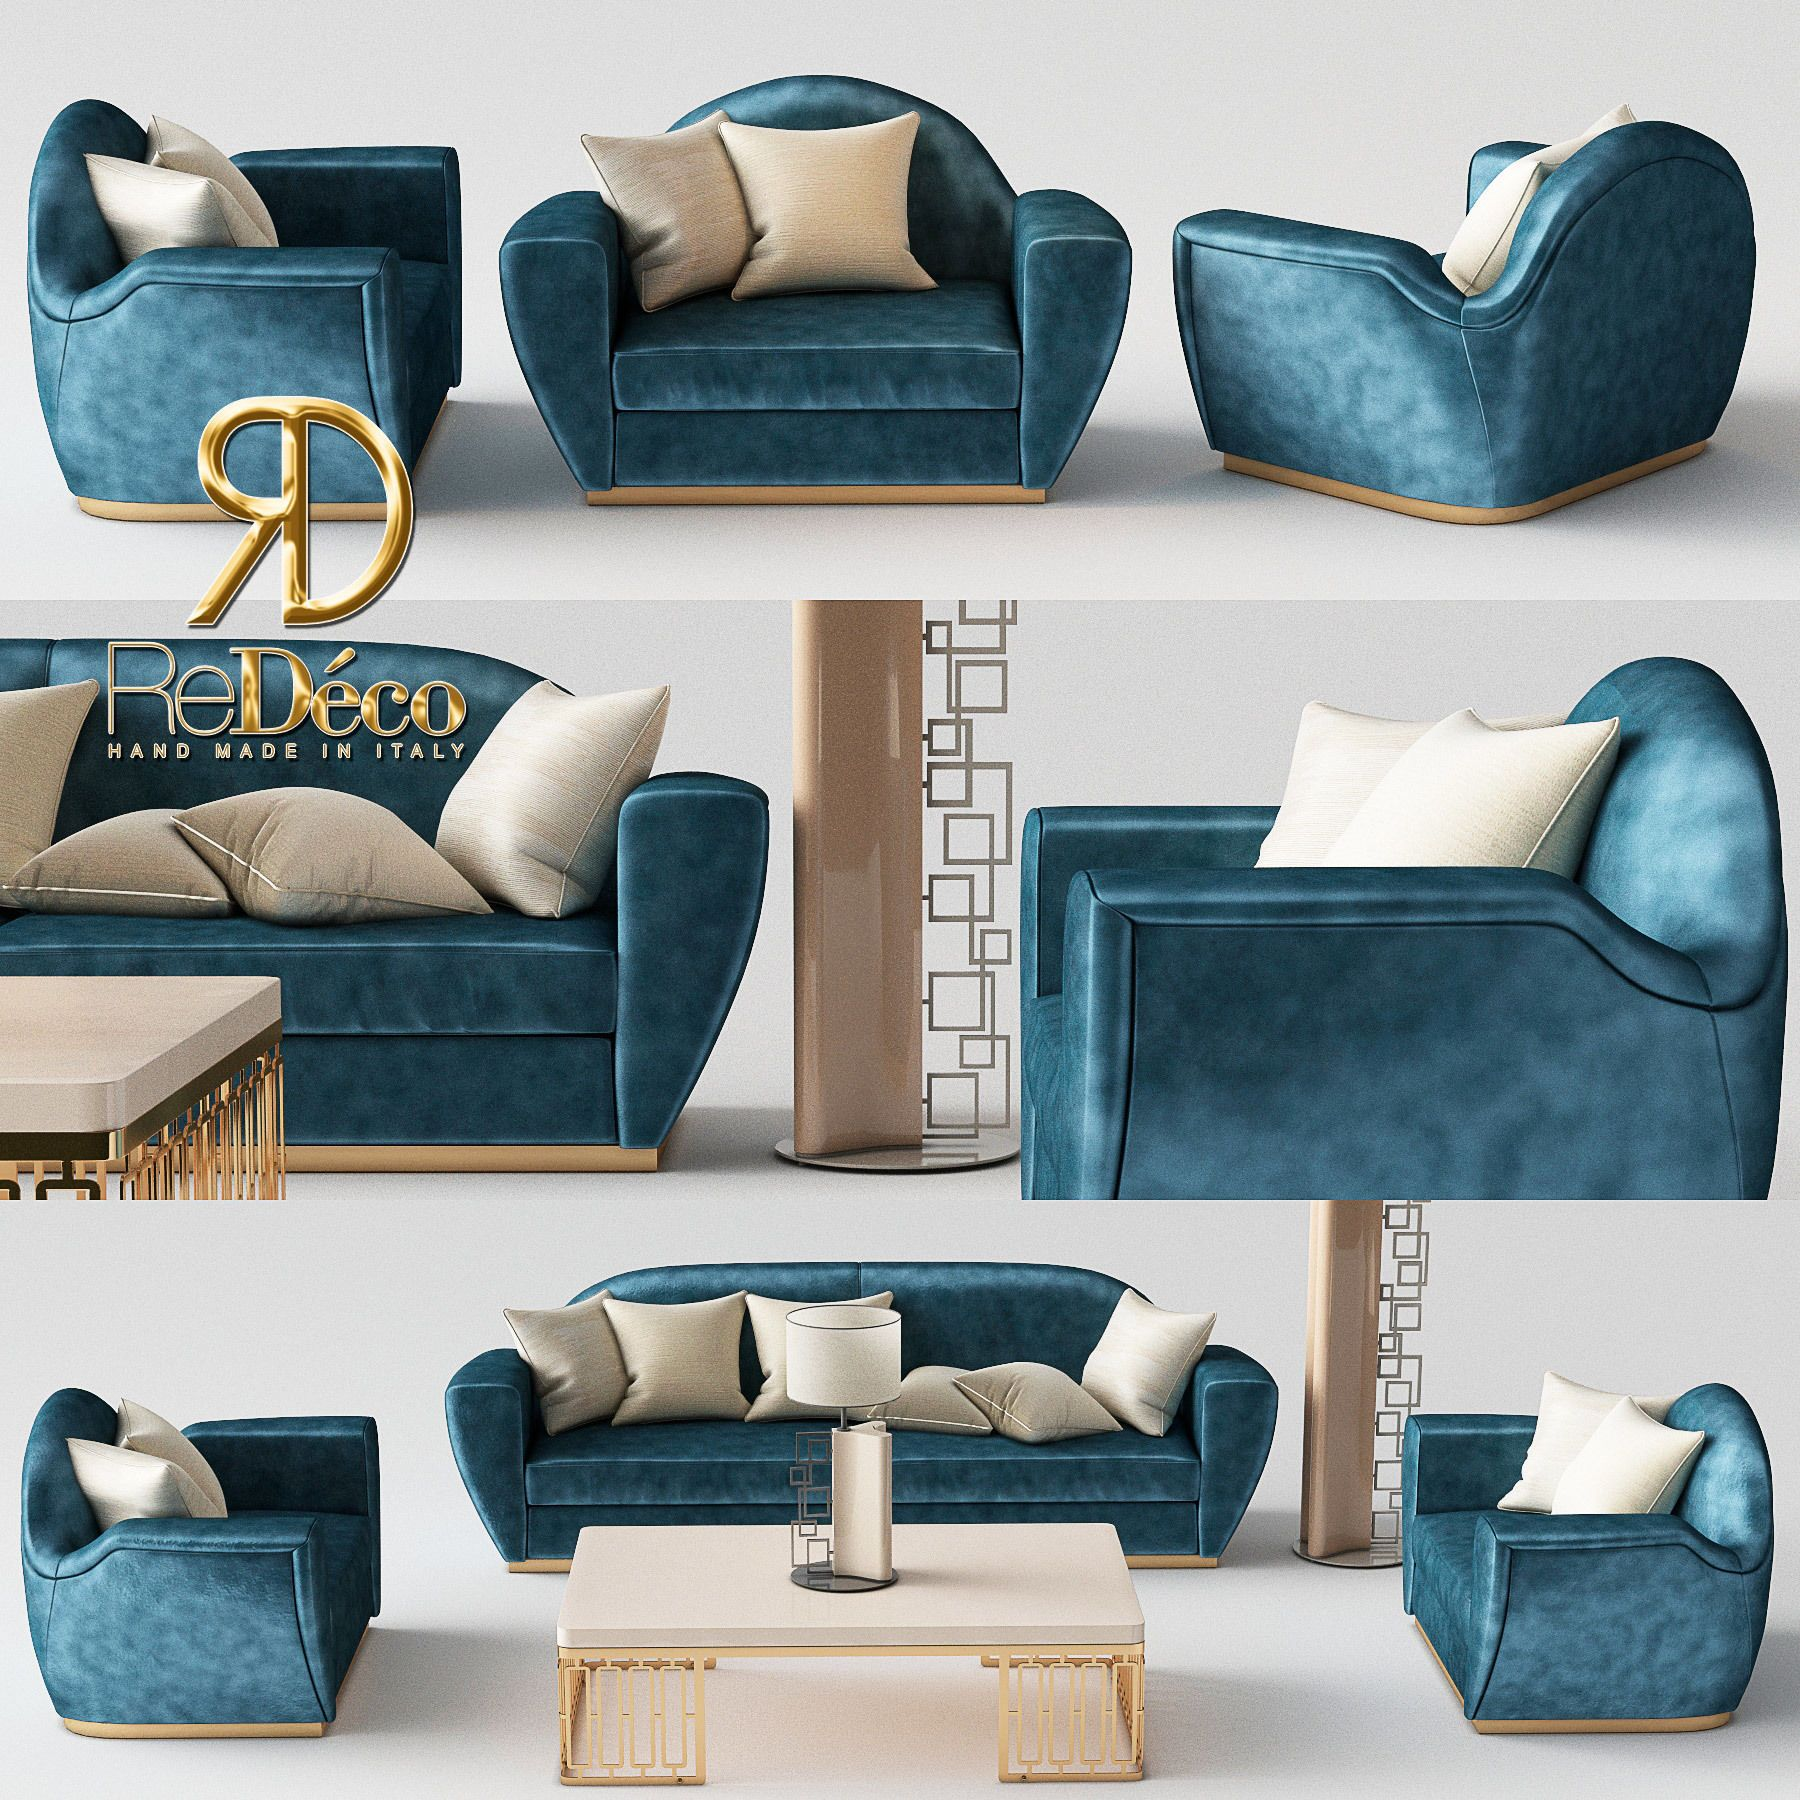 50+ Luxury living room furniture manufacturers ideas in 2021